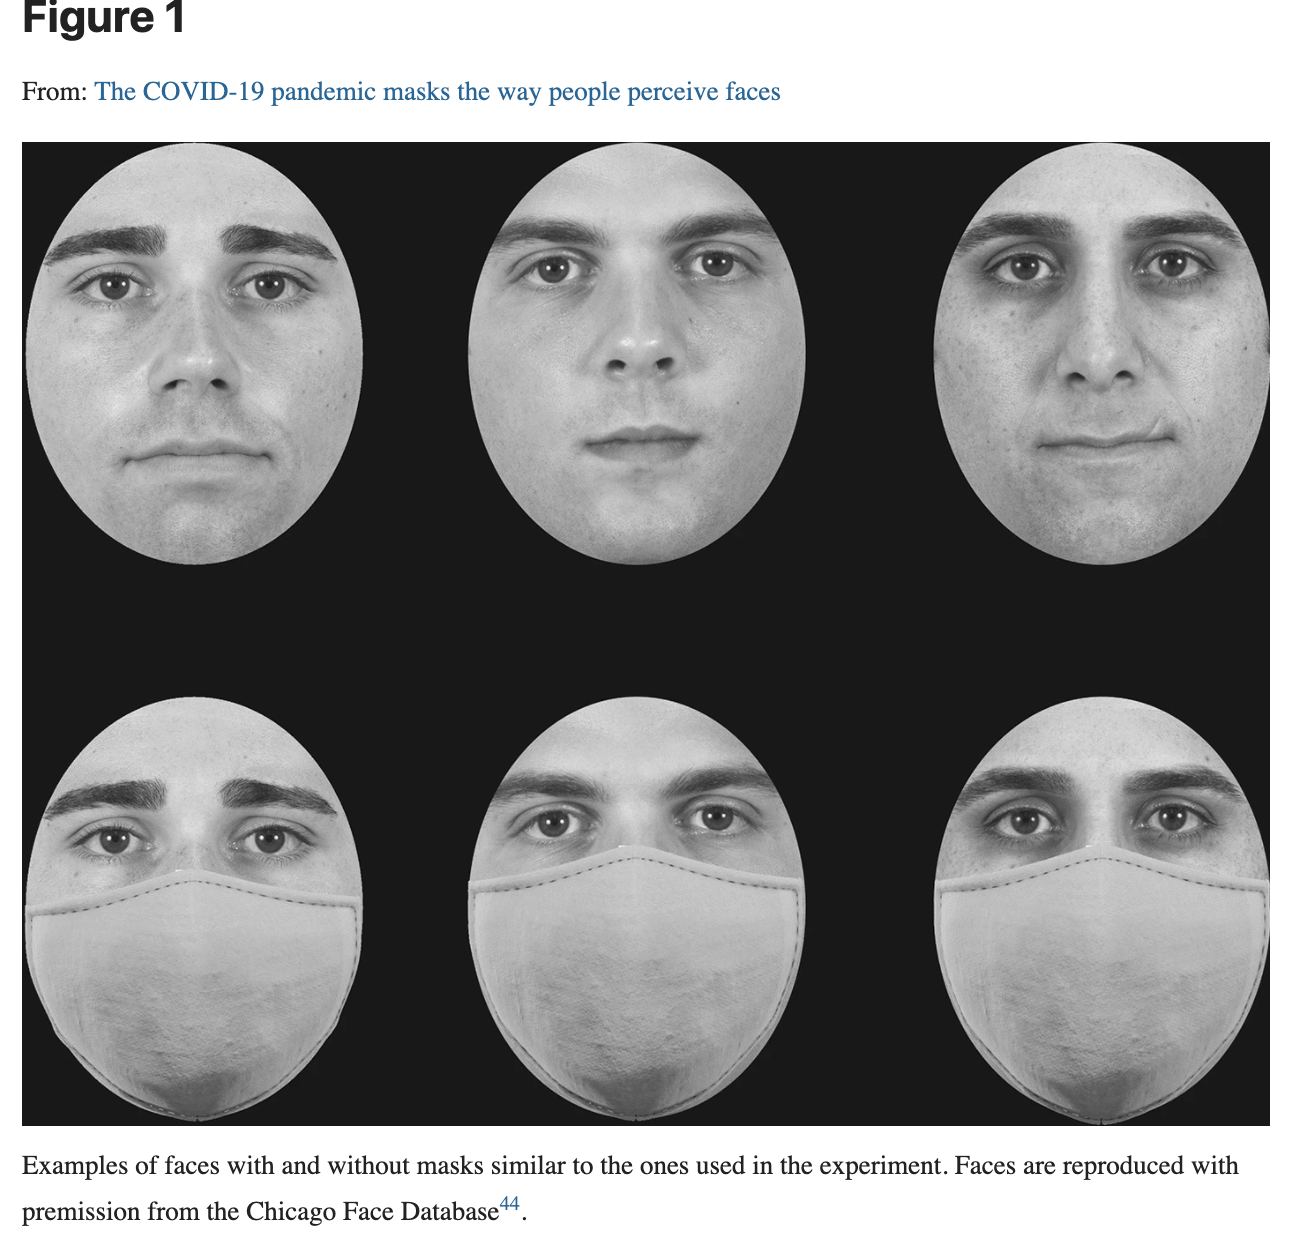 Faces are shown which were similar to ones used in experiment. The three faces at top have different facial expressions. The three faces at bottom are same faces, but with masks on.